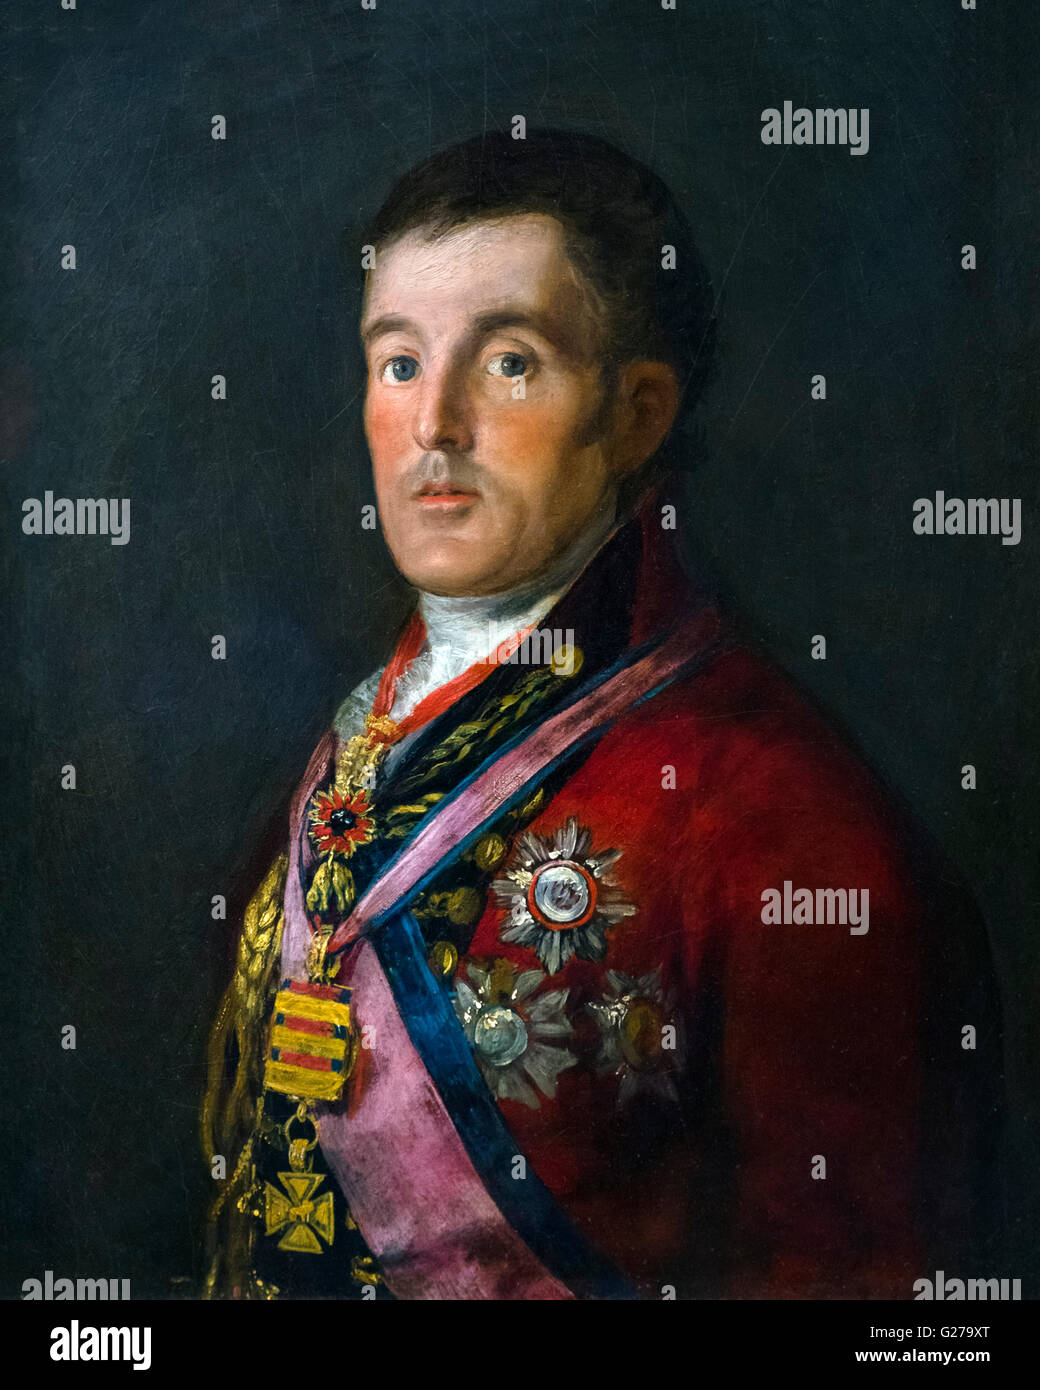 Duke of Wellington (1769-1852), portrait by Francisco de Goya, 1812-14. - Stock Image